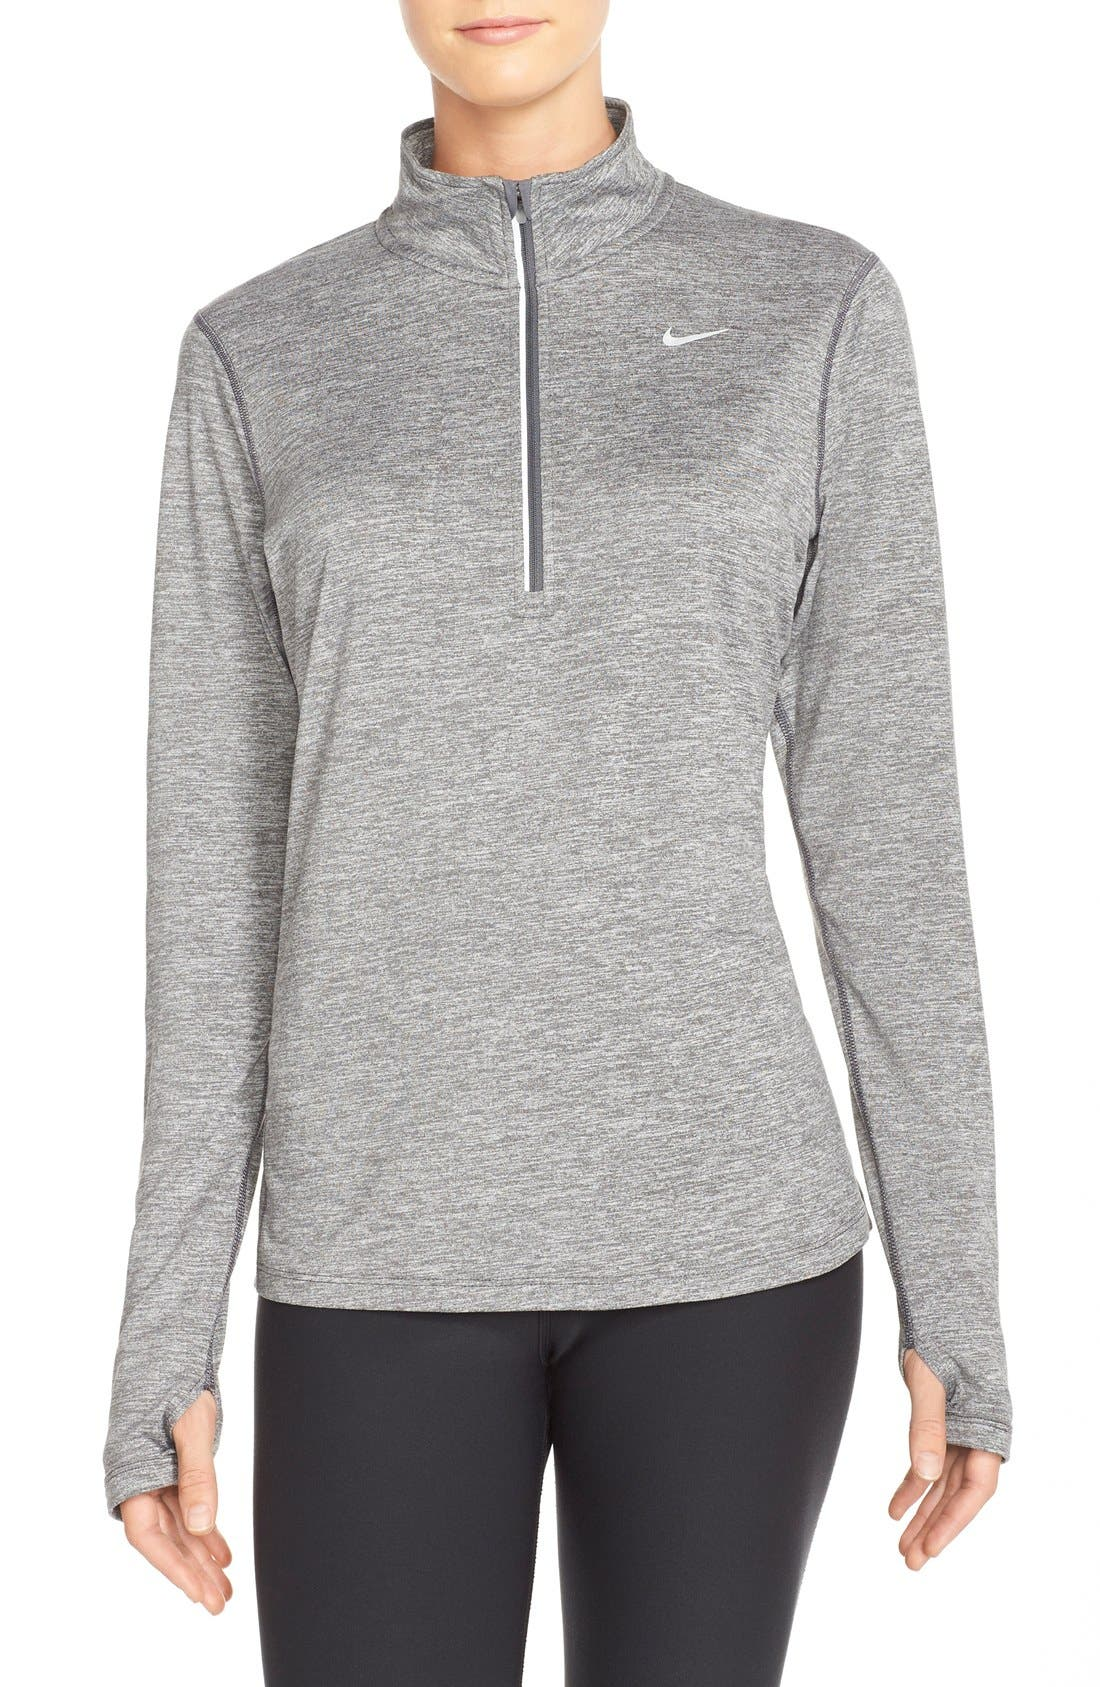 Nike 'Element' Dri-FIT Half Zip Performance Top